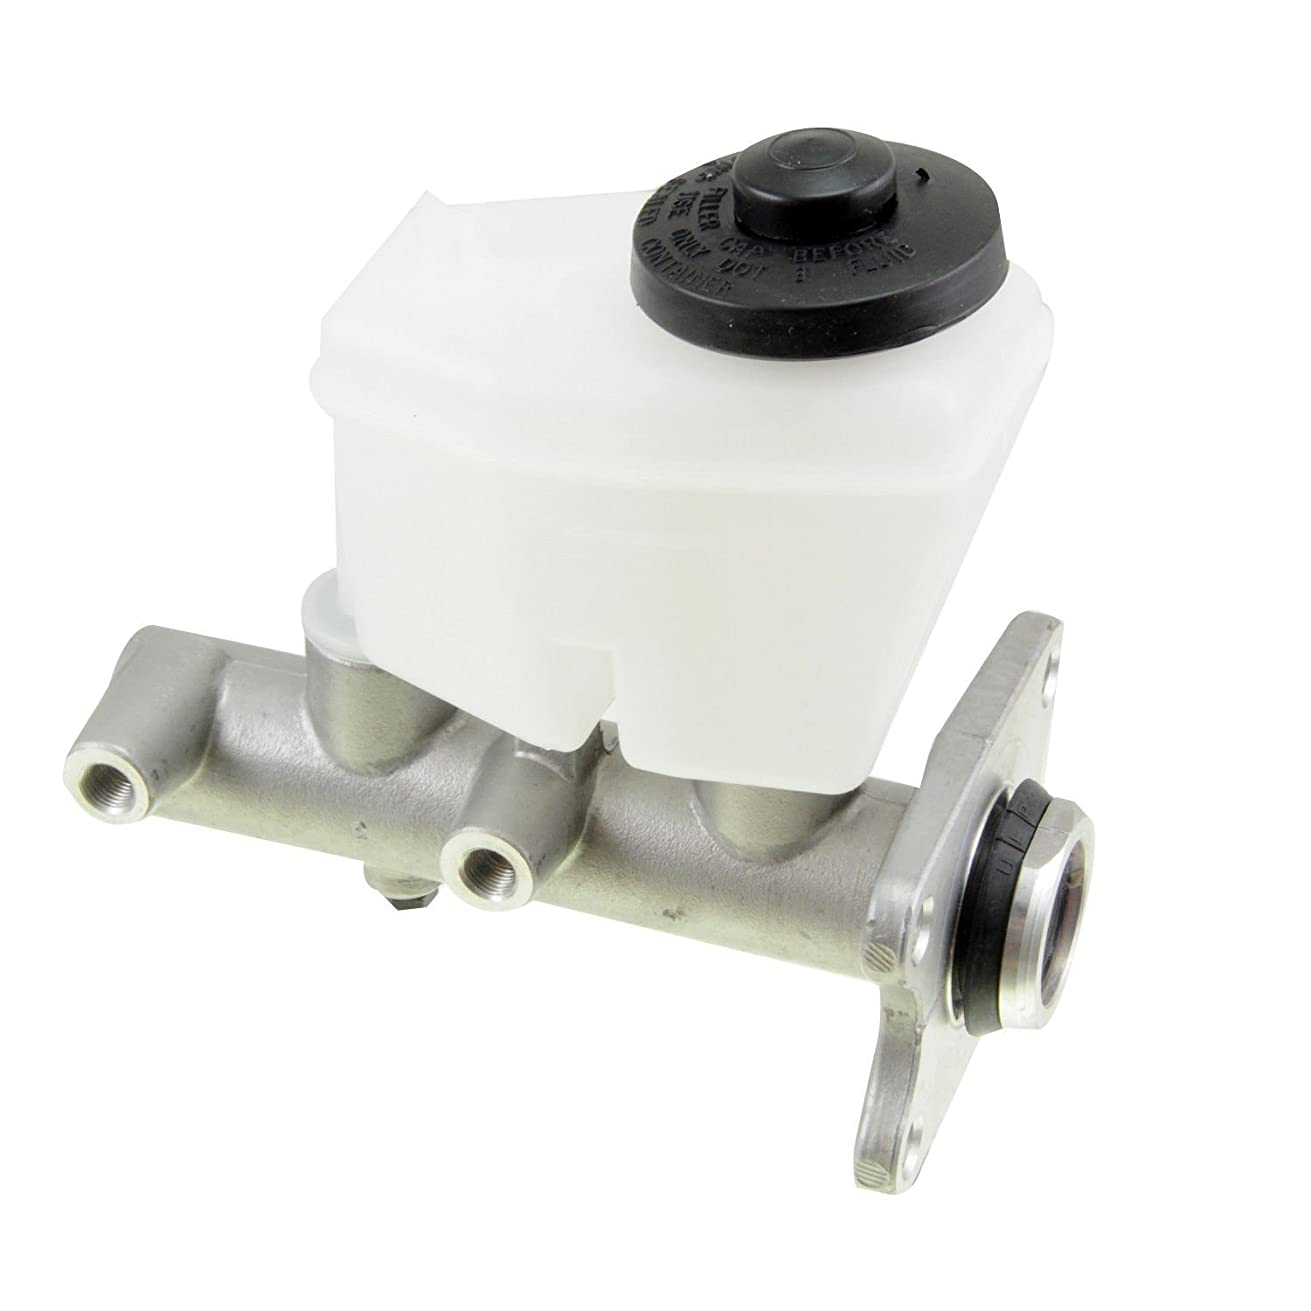 NAMCCO Brake master cylinder Compatible with TOYOTA 1995-1998 T100 2 & 4 WD 1/2 ton without antilock, 1994-1994 Toyota pickup with 1